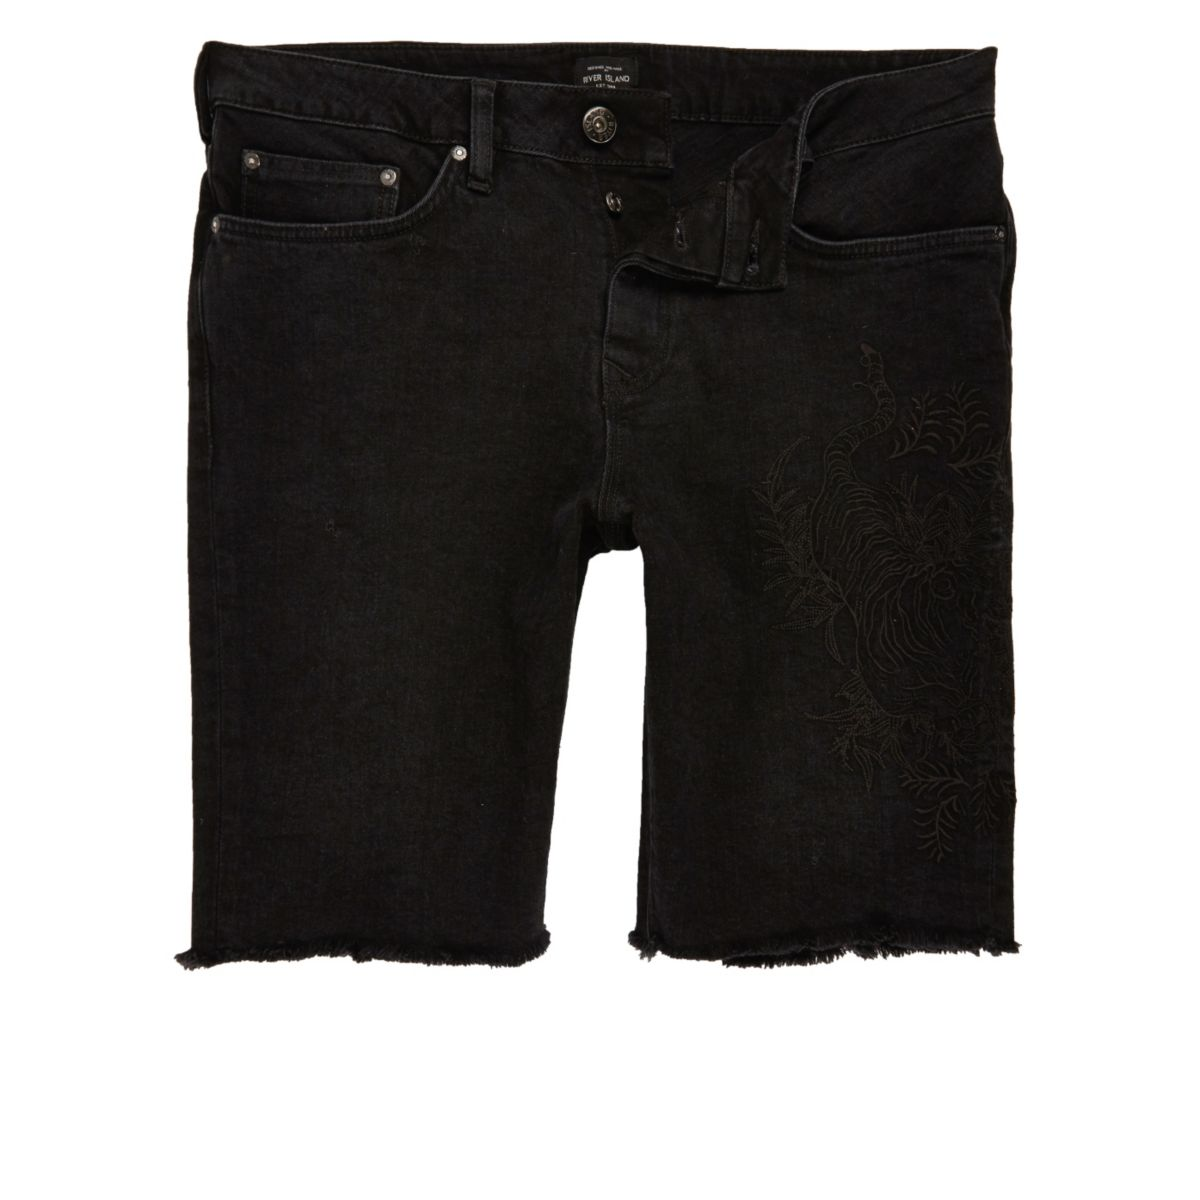 Black stretch denim western chain shorts